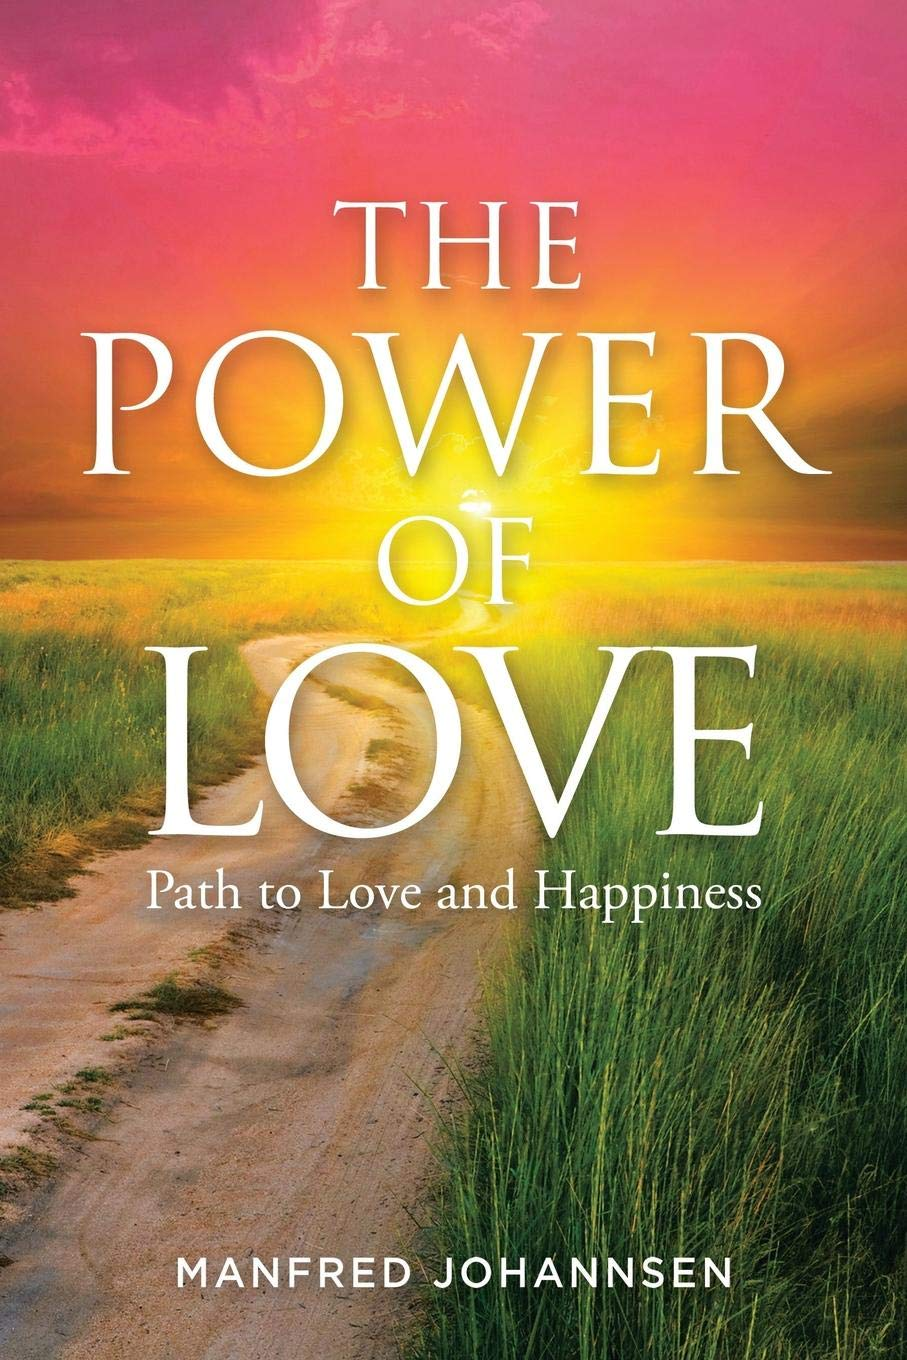 THE POWER OF LOVE Path to Love and Happiness